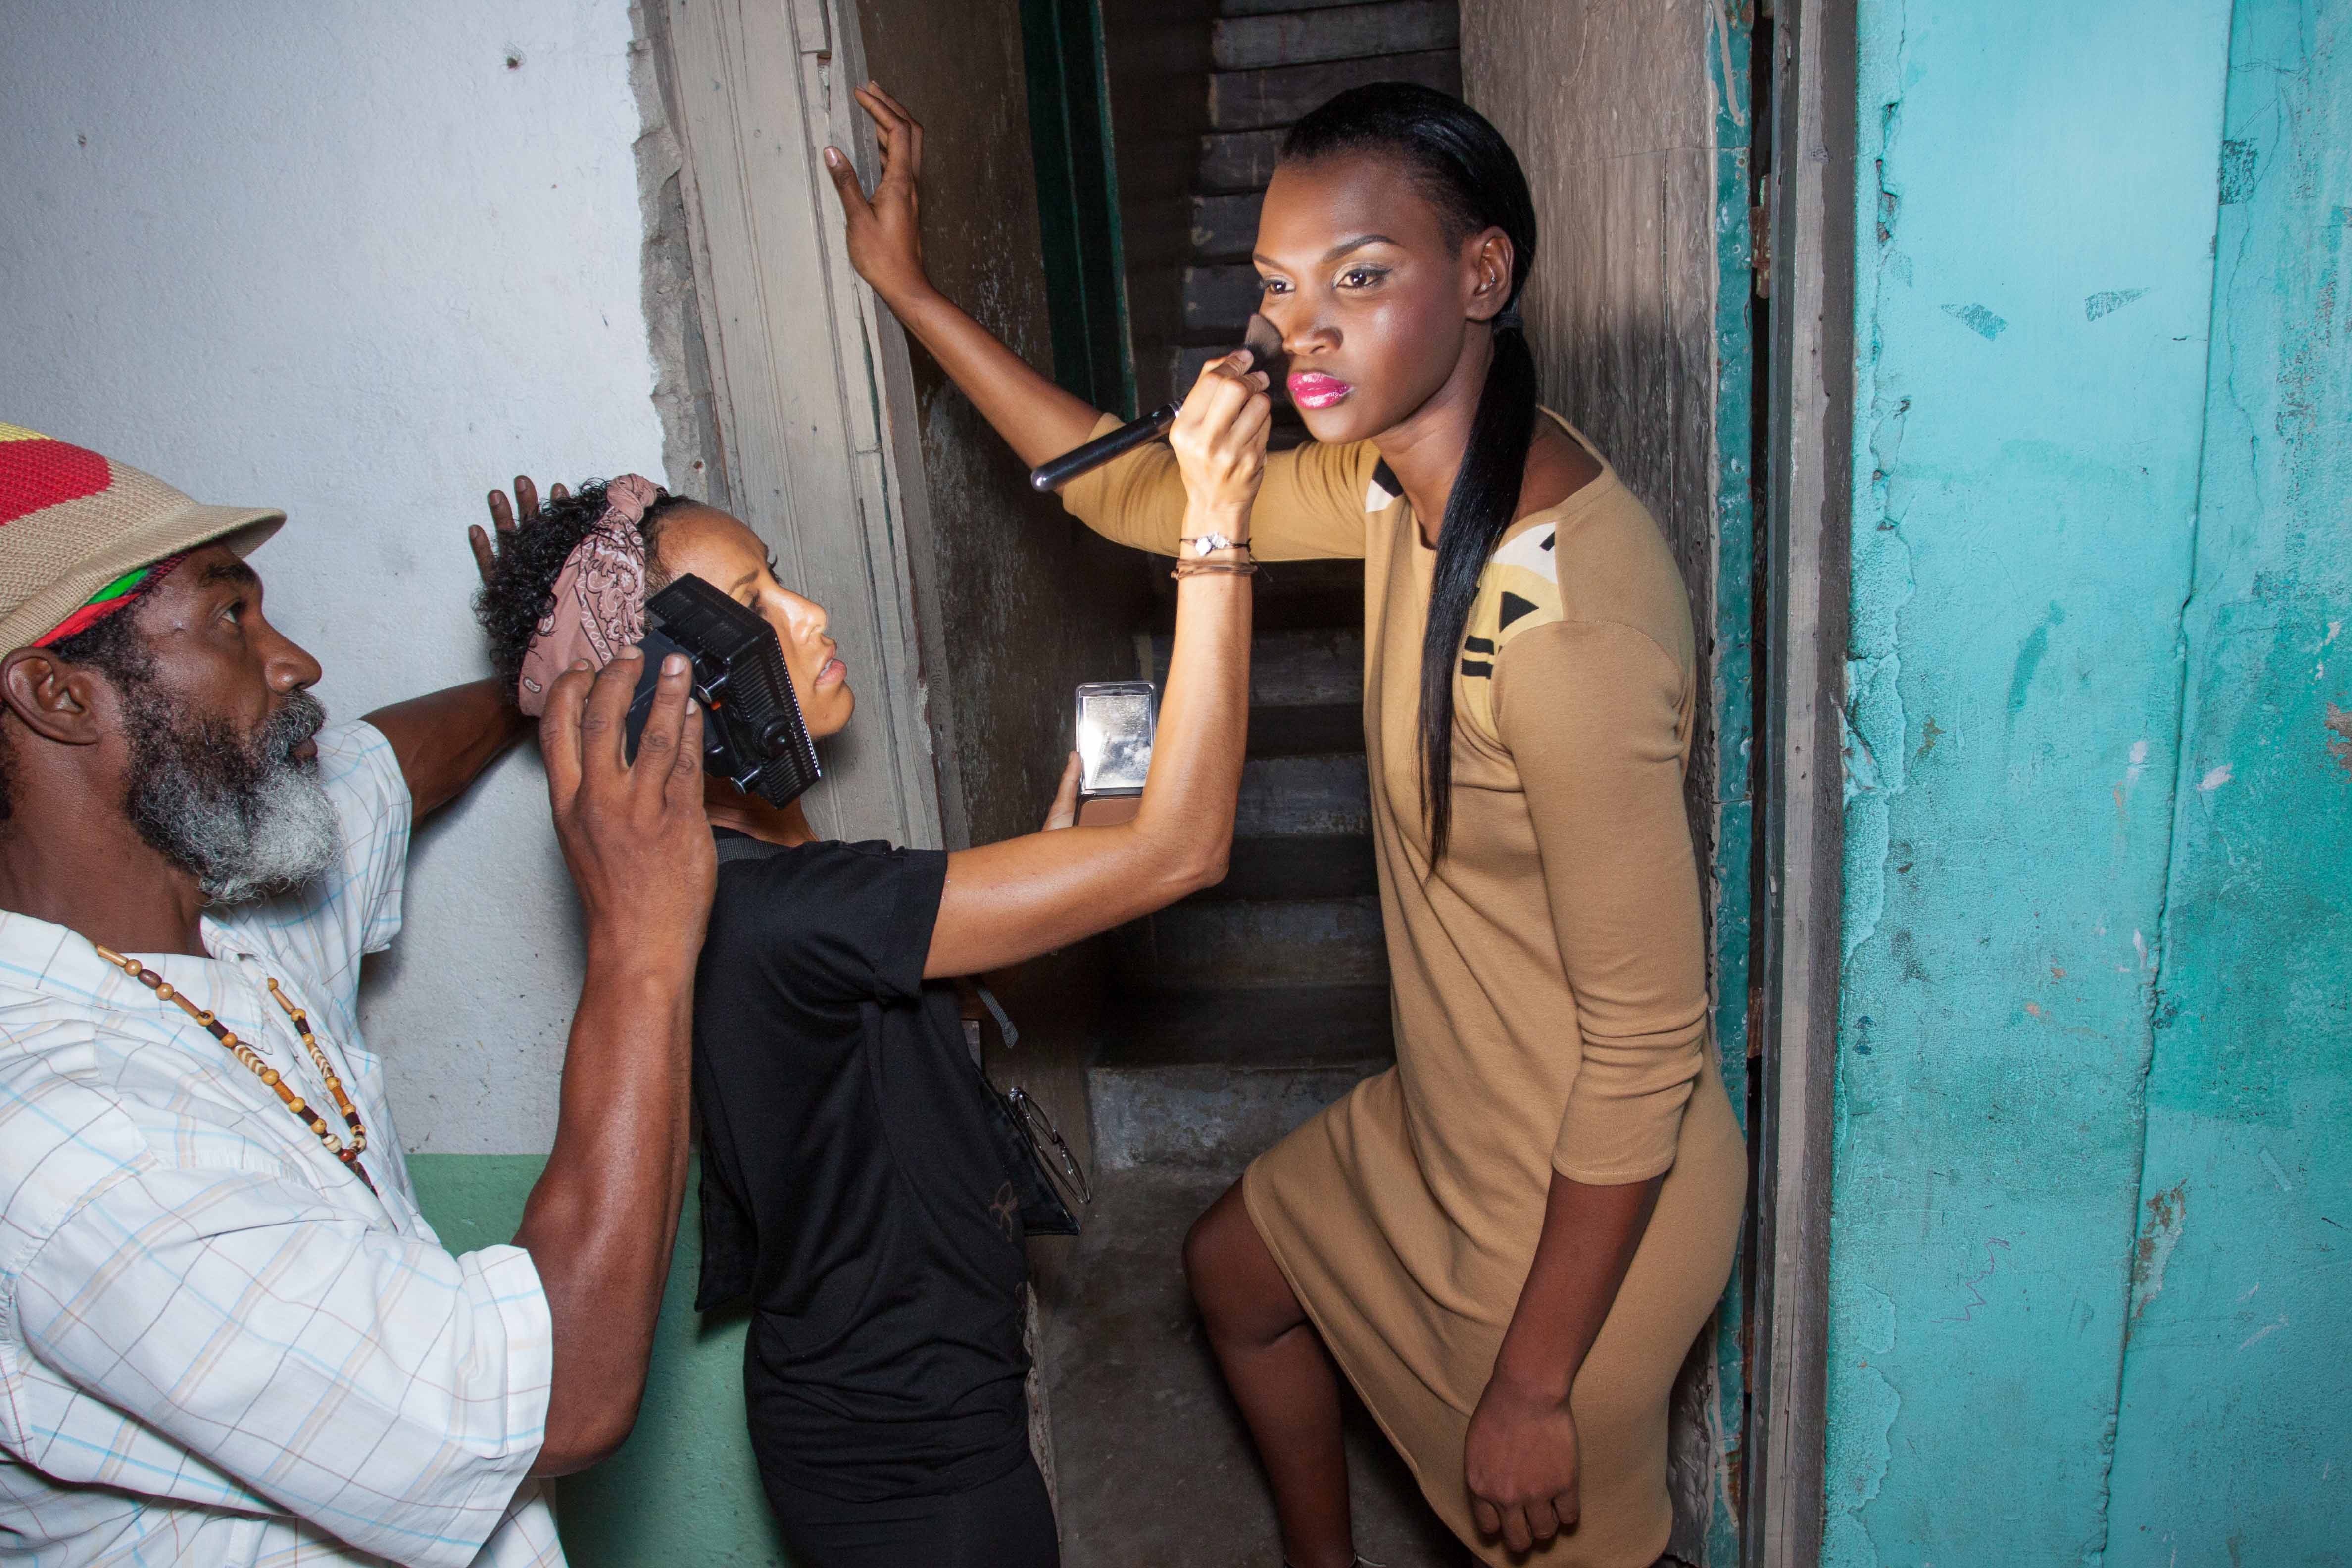 Model, Rochelle Watson, prepares for the camera as makeup artist, Loni Jones, applies finishing touches. Photo courtesy Mark Gellineau.